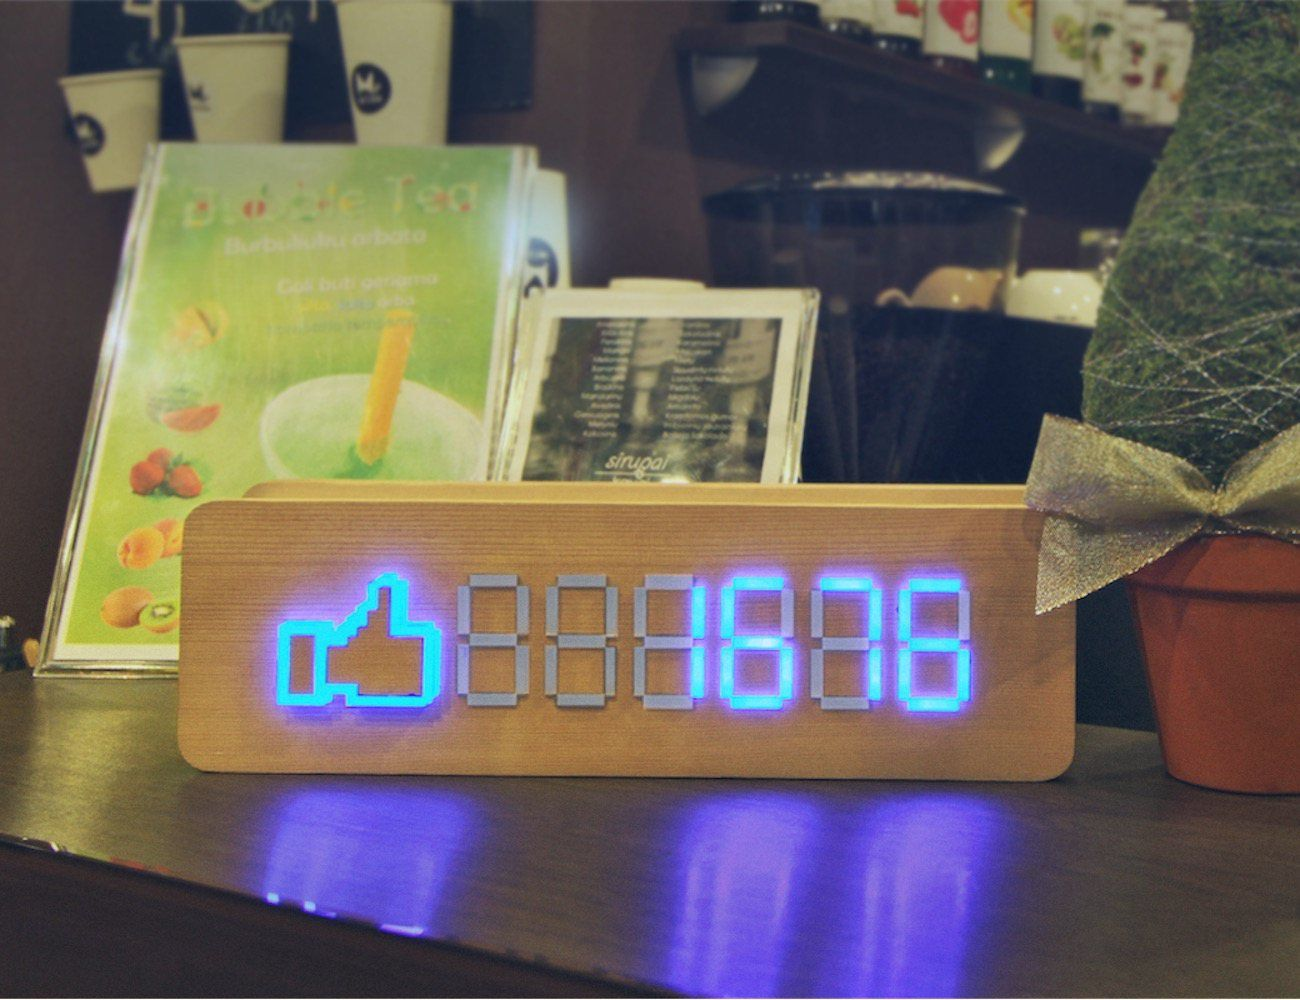 15 Social Media Gadgets to Make All Your Followers Jealous